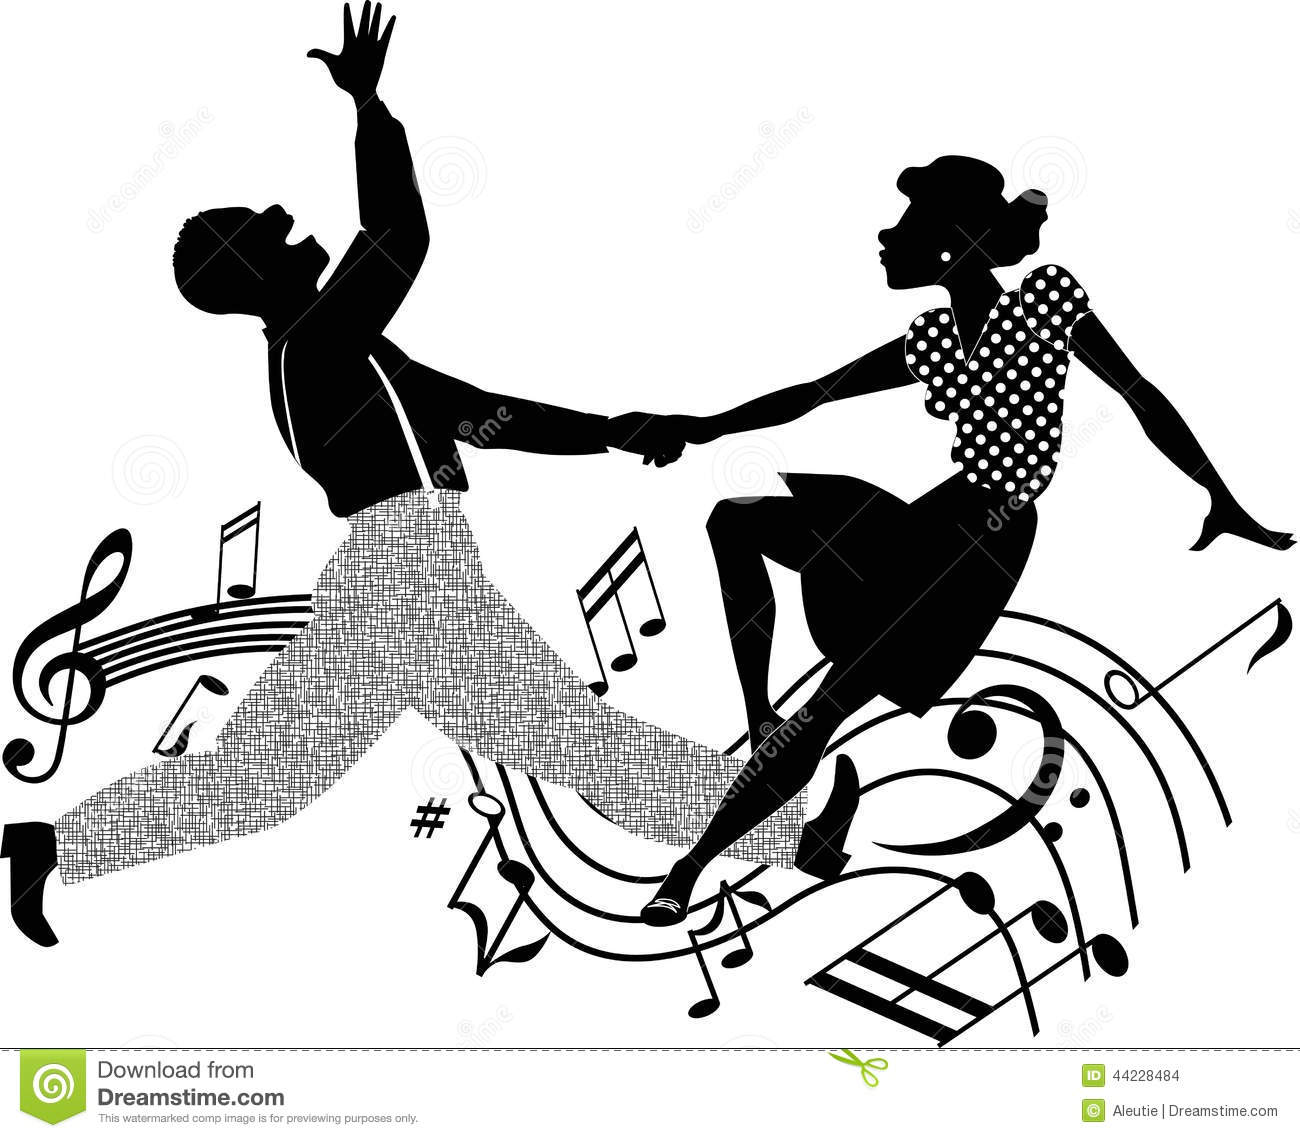 Silhouette Vector Illustration Of An African American Couple Dancing